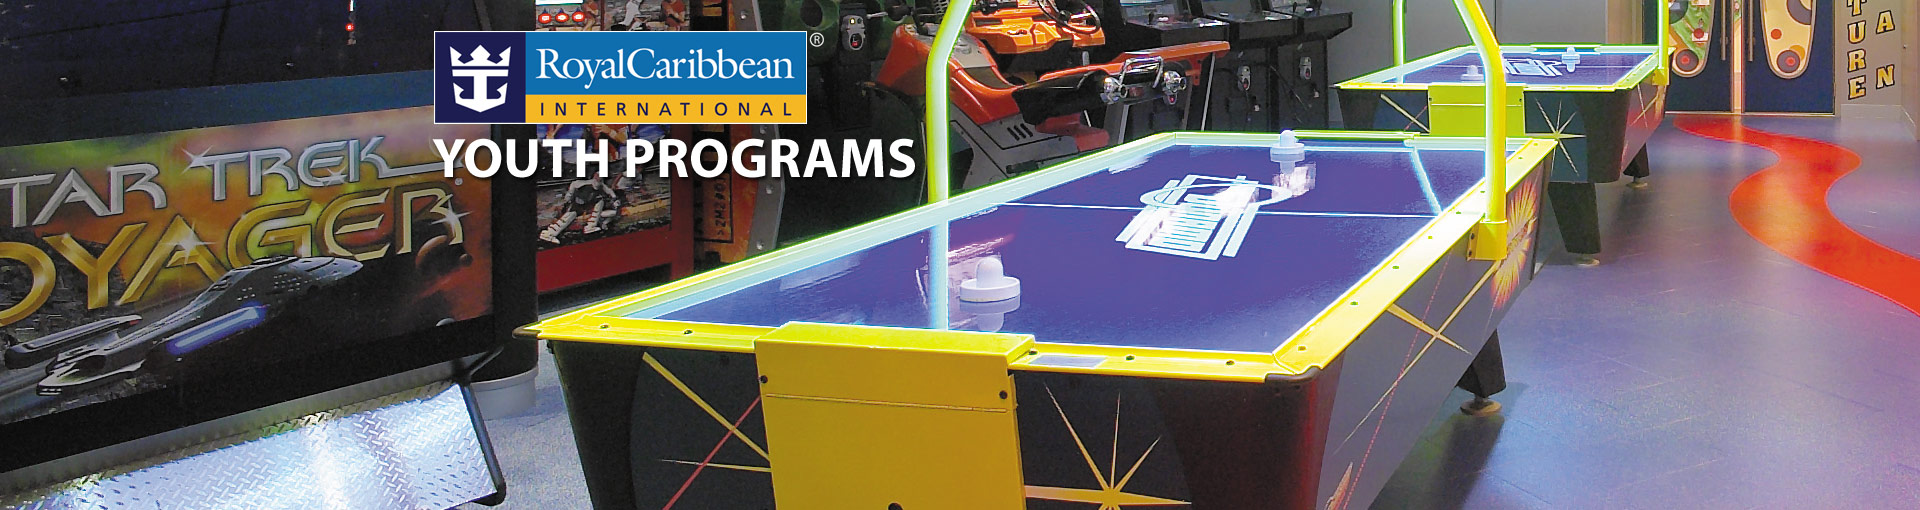 Royal Caribbean Youth Programs